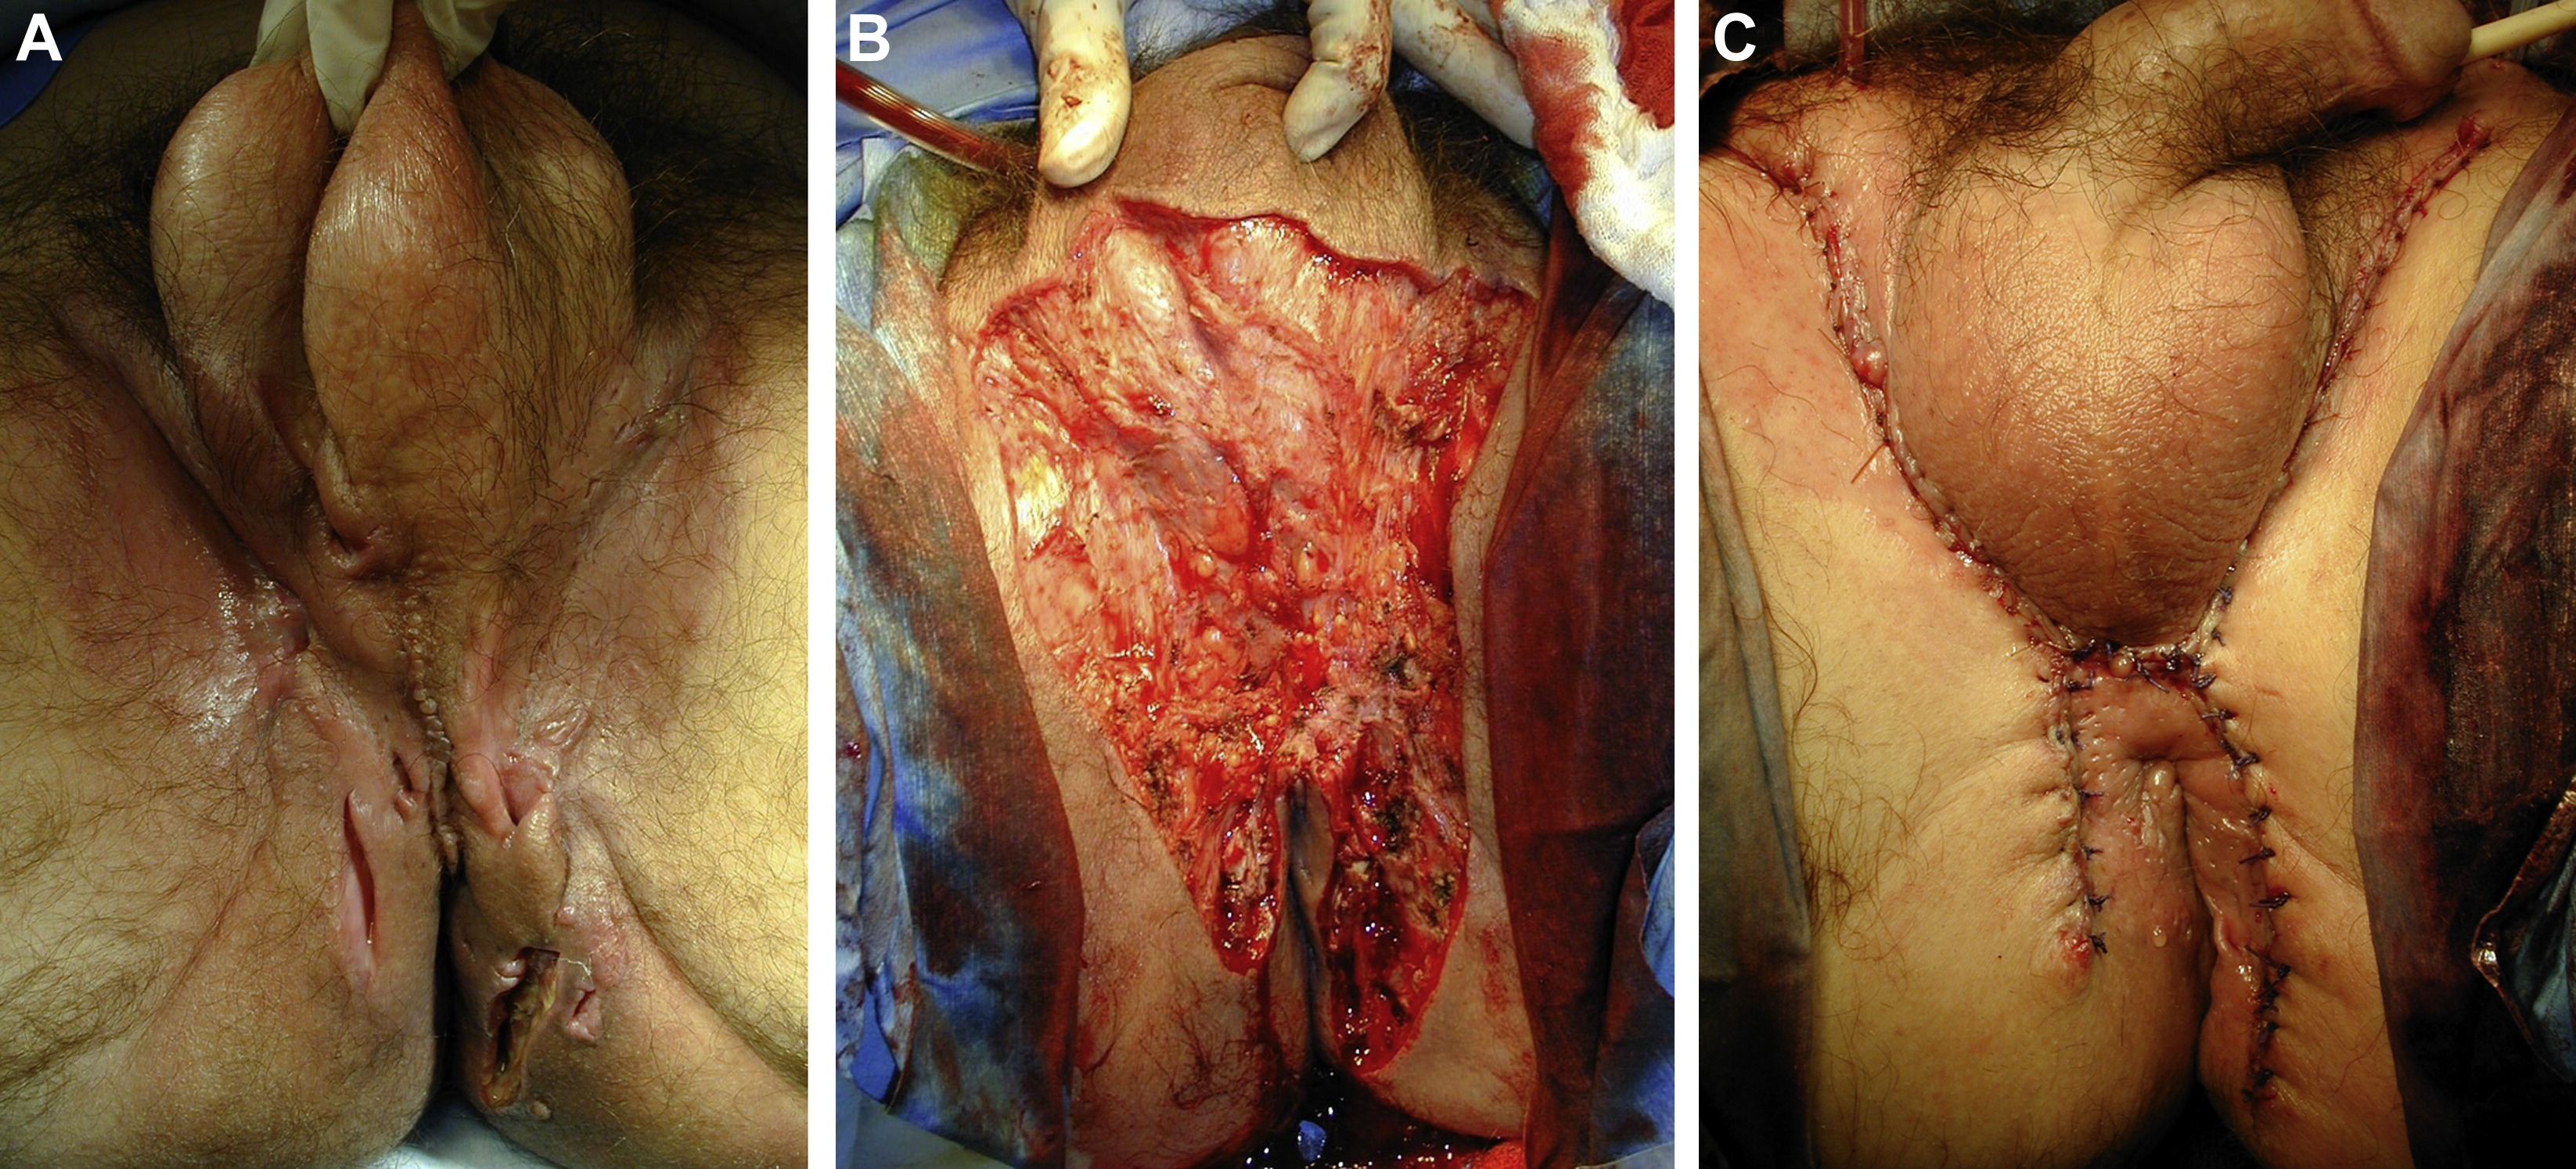 Surgical Management Of Genitoperineal Hidradenitis